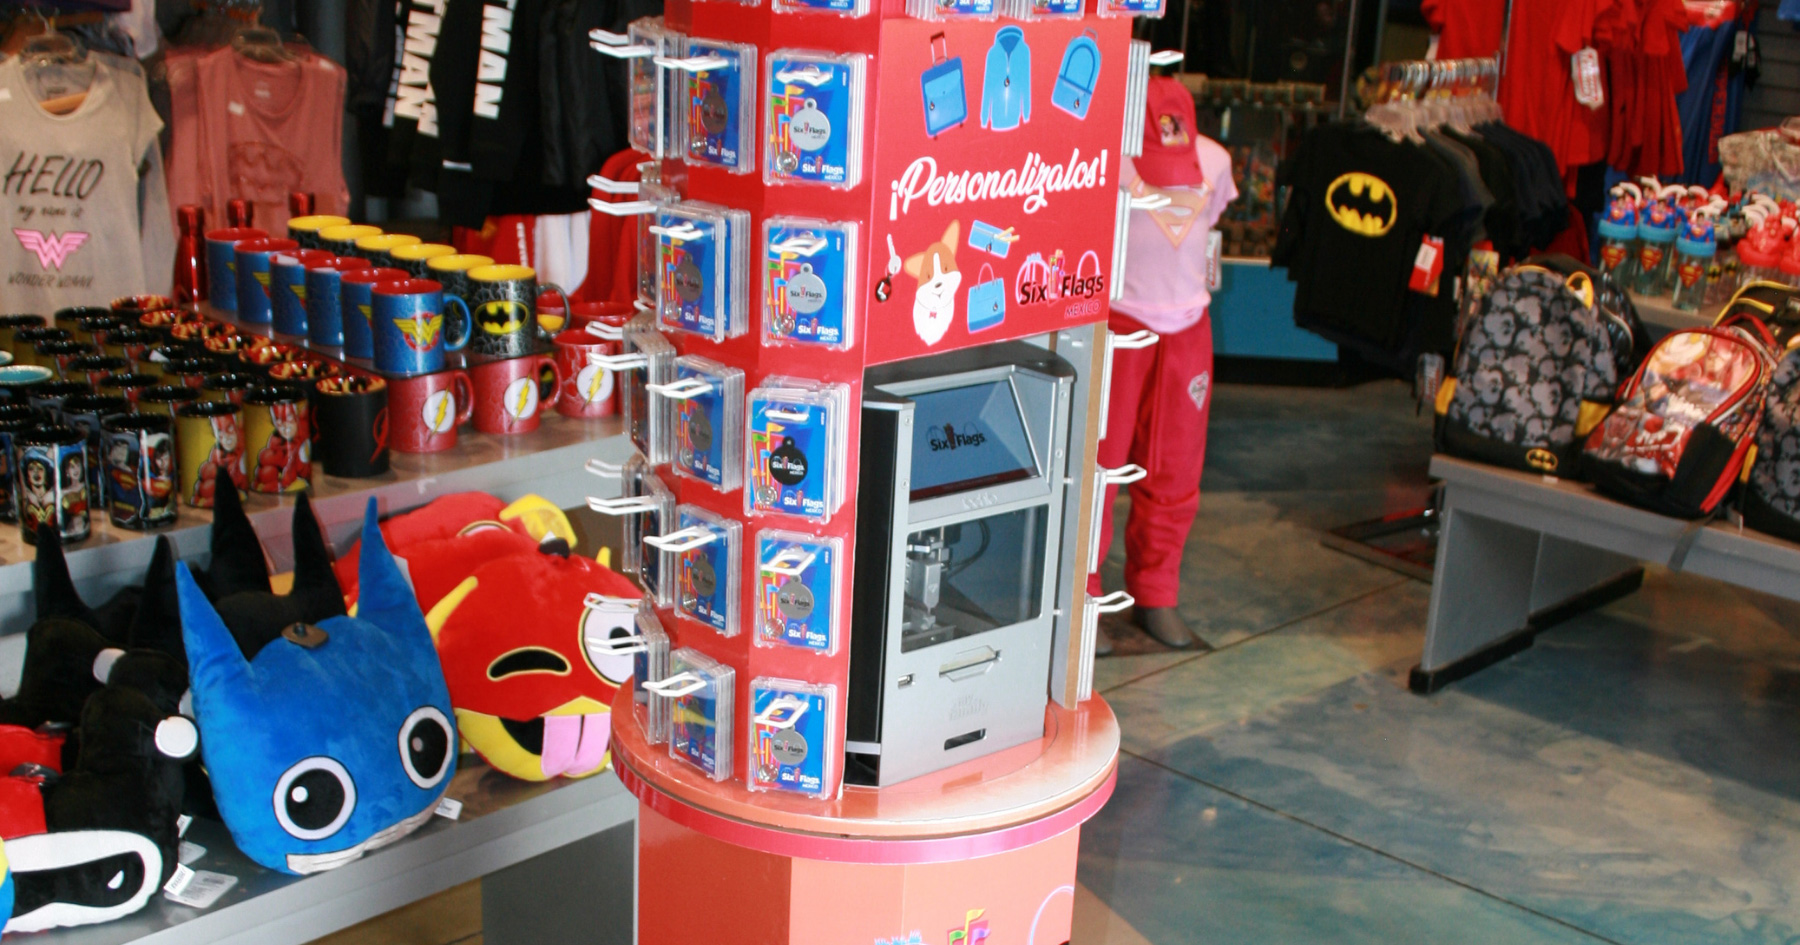 POS personalization kiosk in a gift store